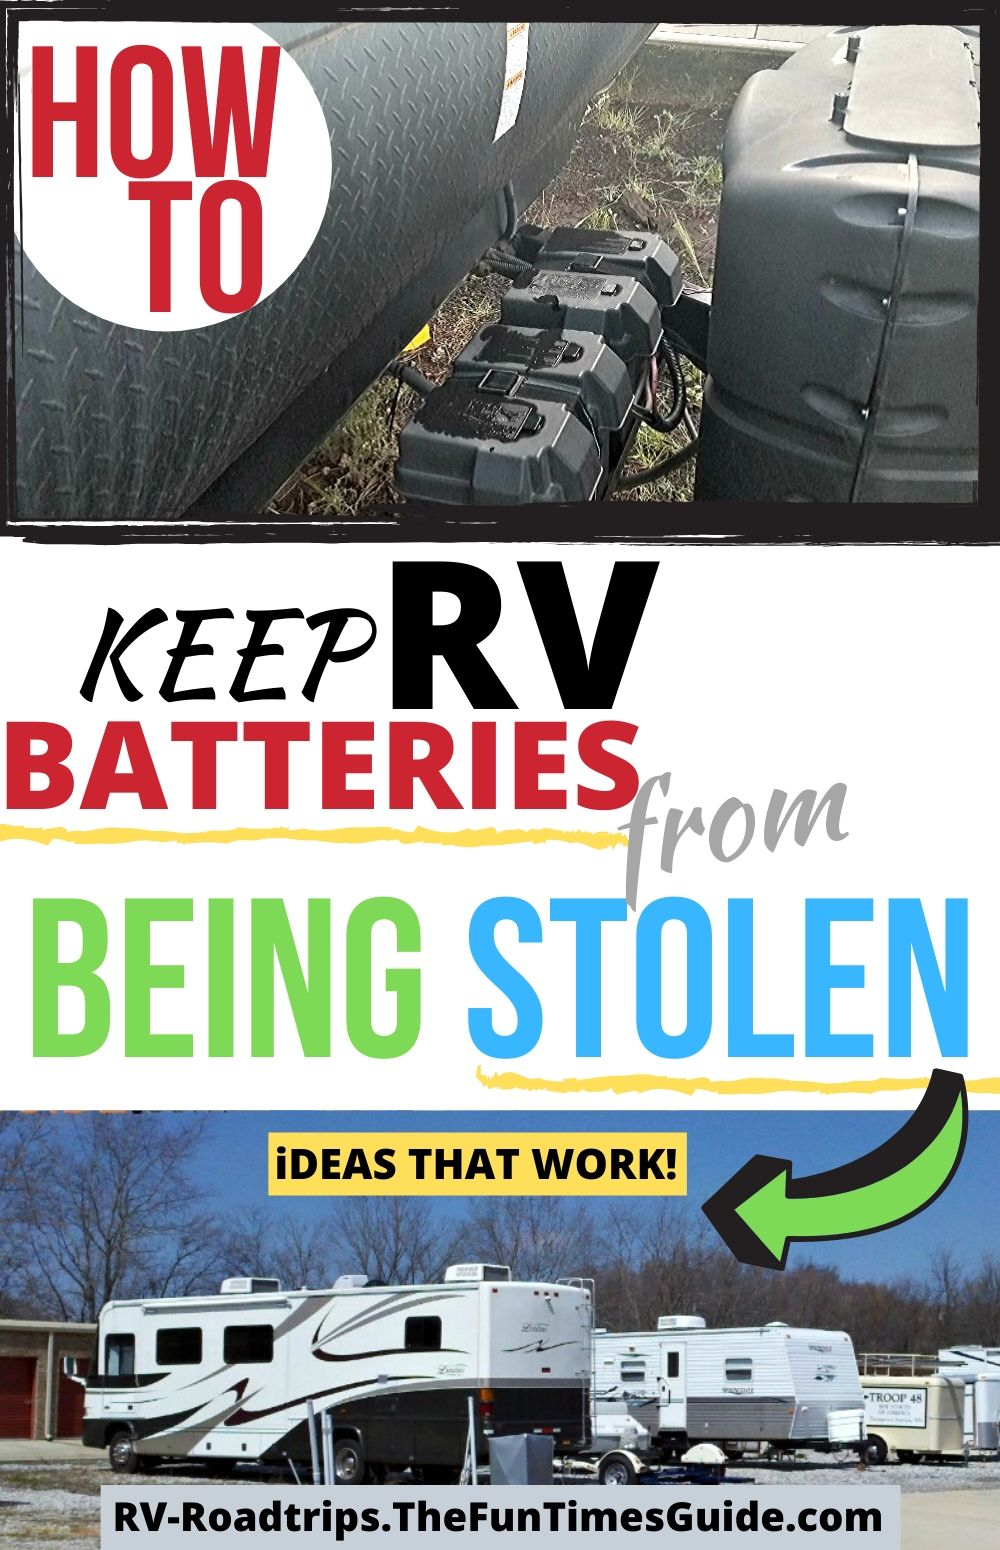 RV Battery Theft Protection: How To Lock RV Batteries To Prevent Them From Being Stolen (Yes, It\'s A Thing)